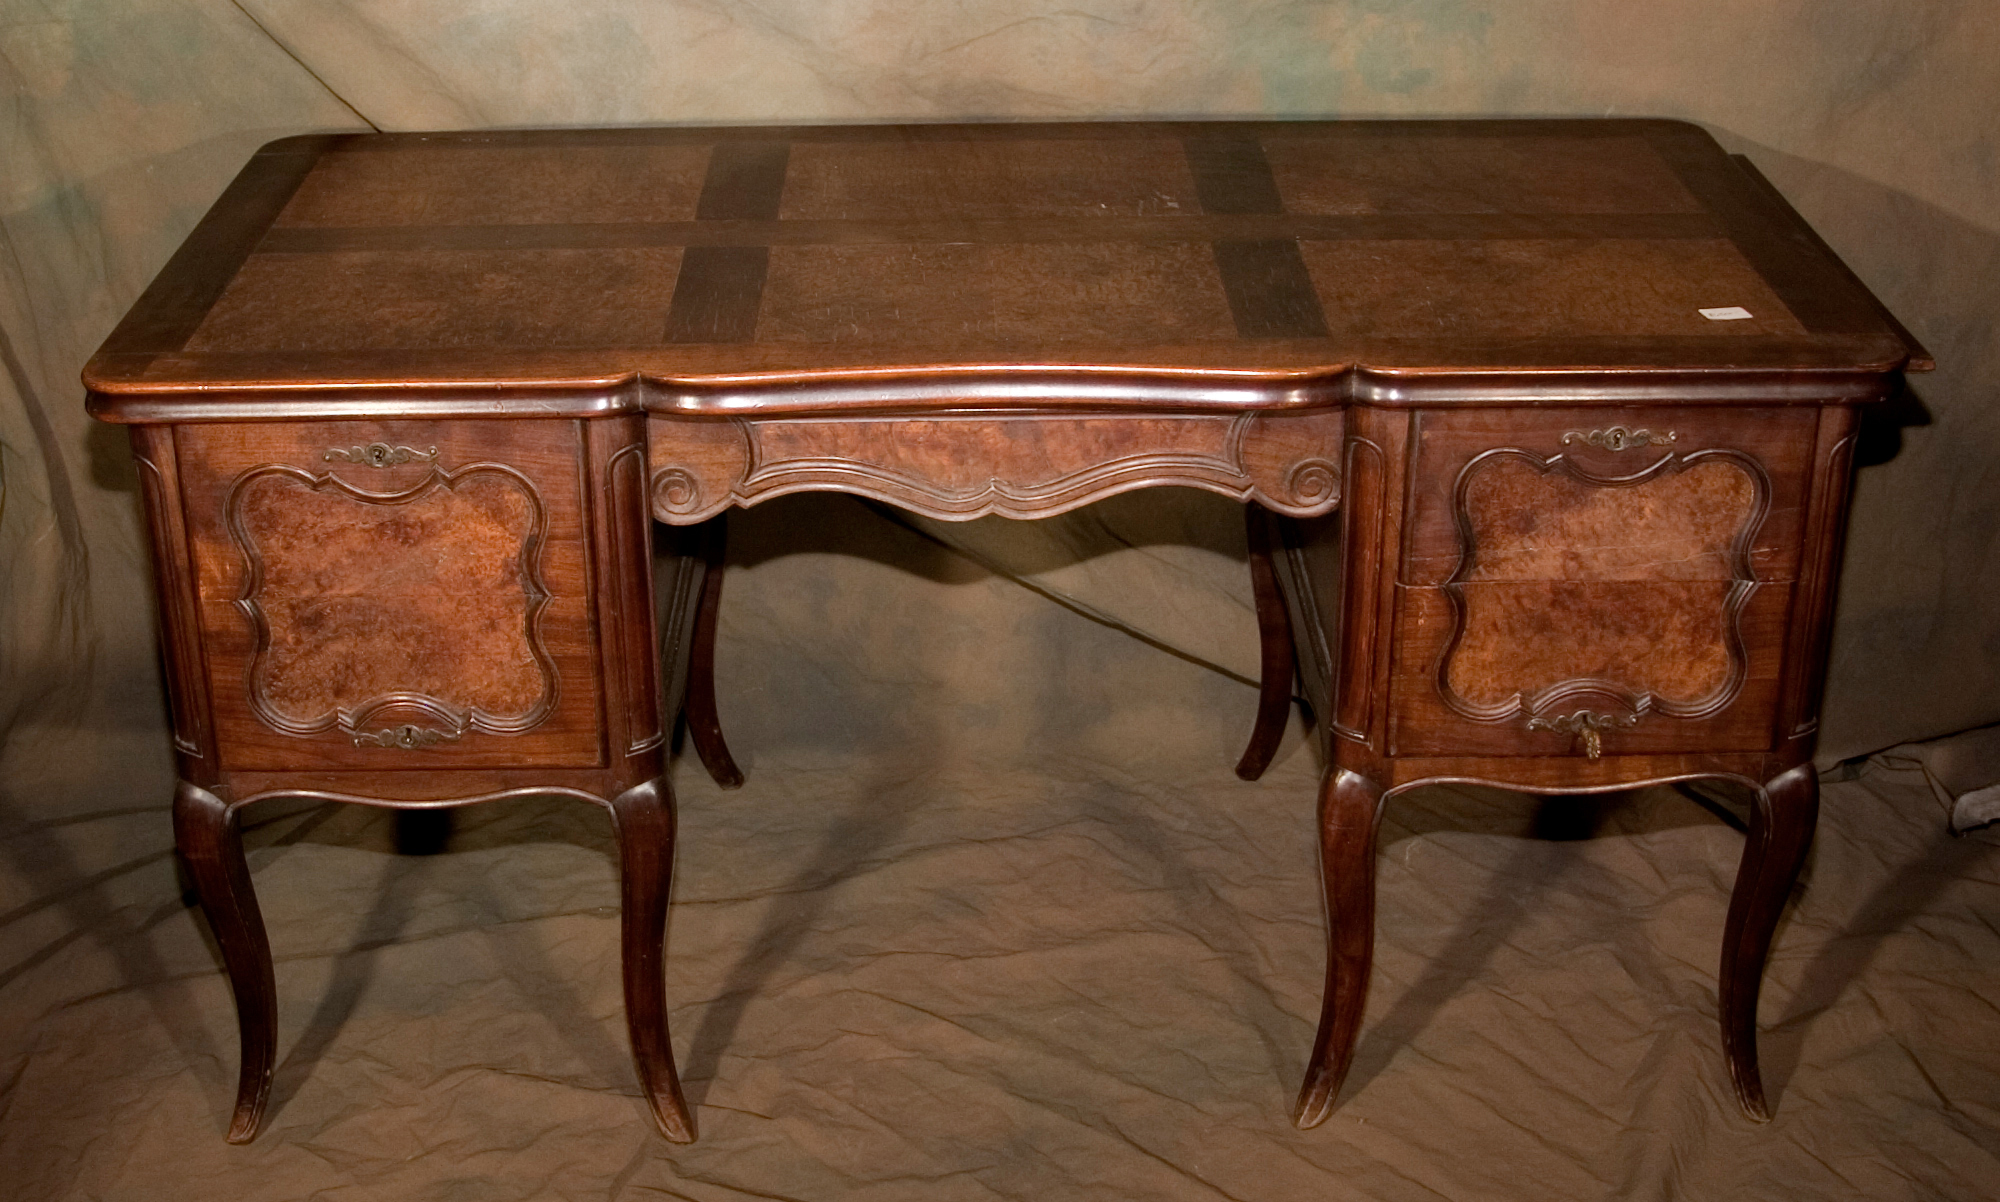 French Provincial Louis Xv Desk